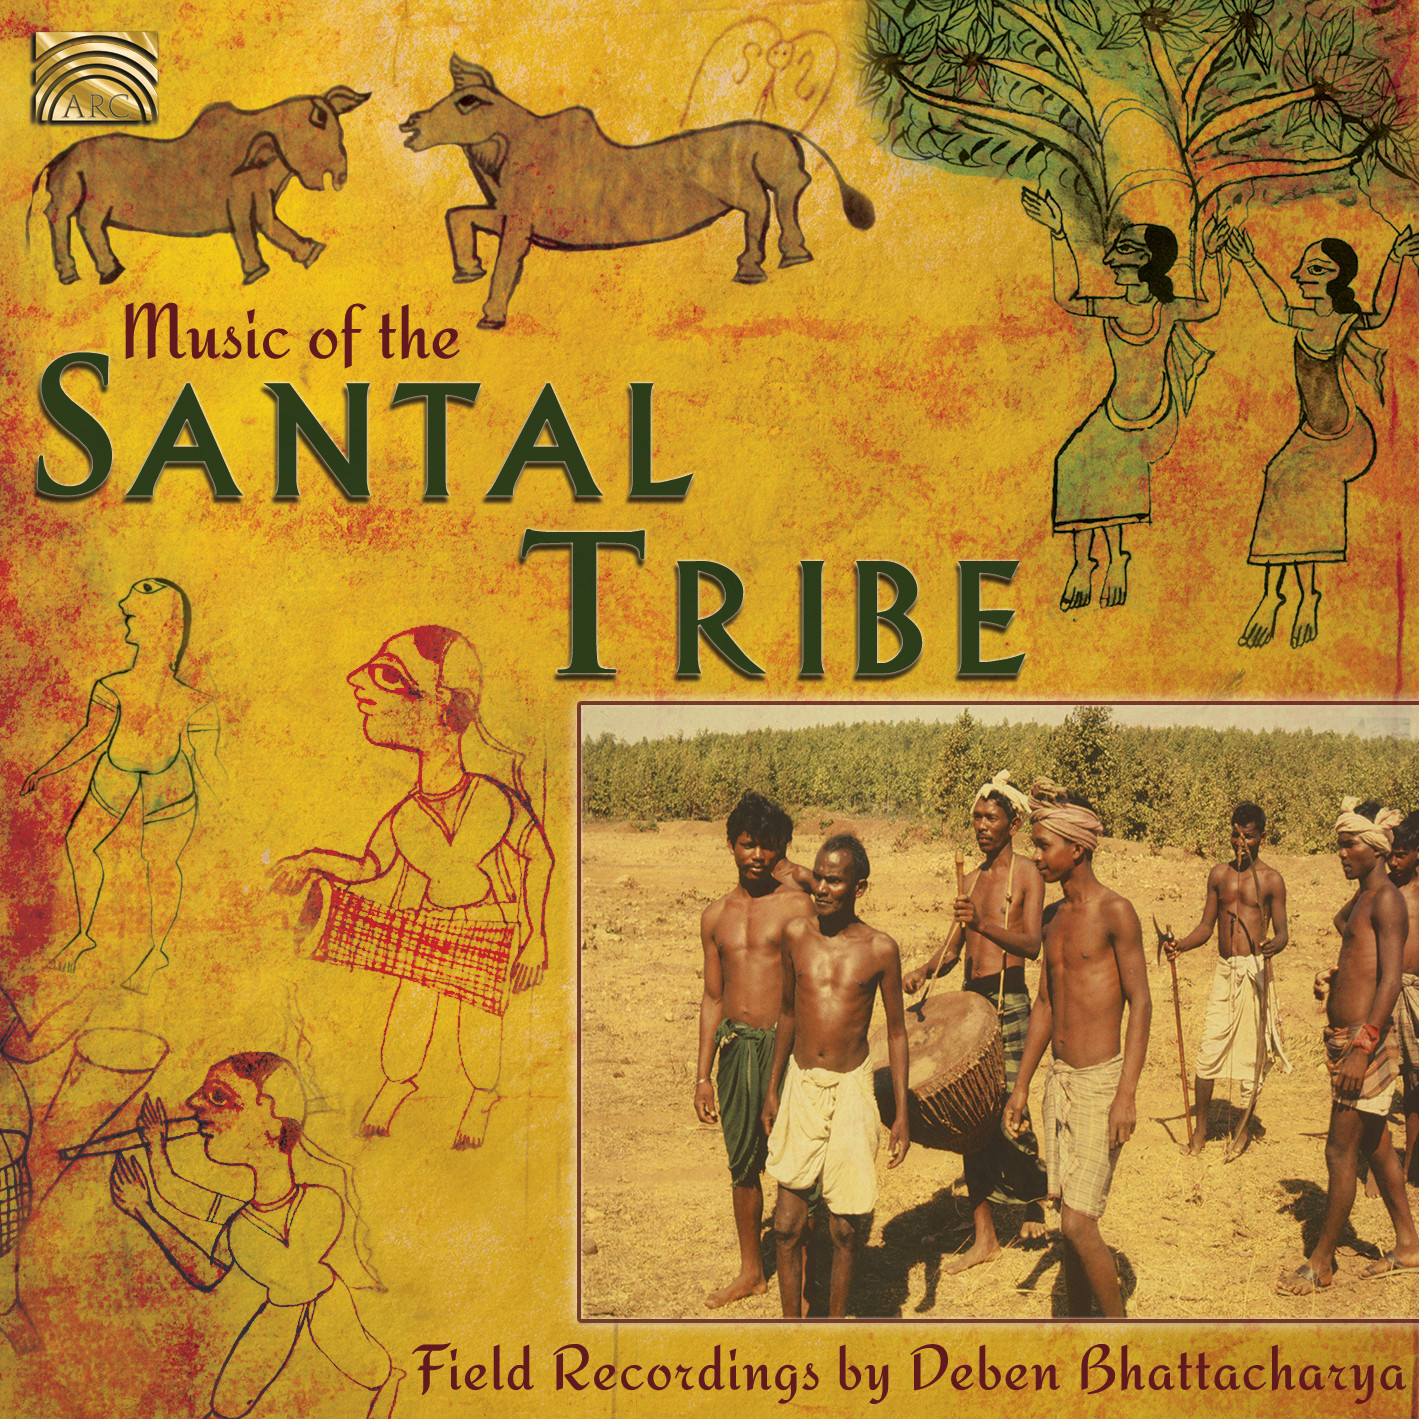 EUCD2510 Music of the Santal Tribe - Field Recordings by Deben Bhattacharya